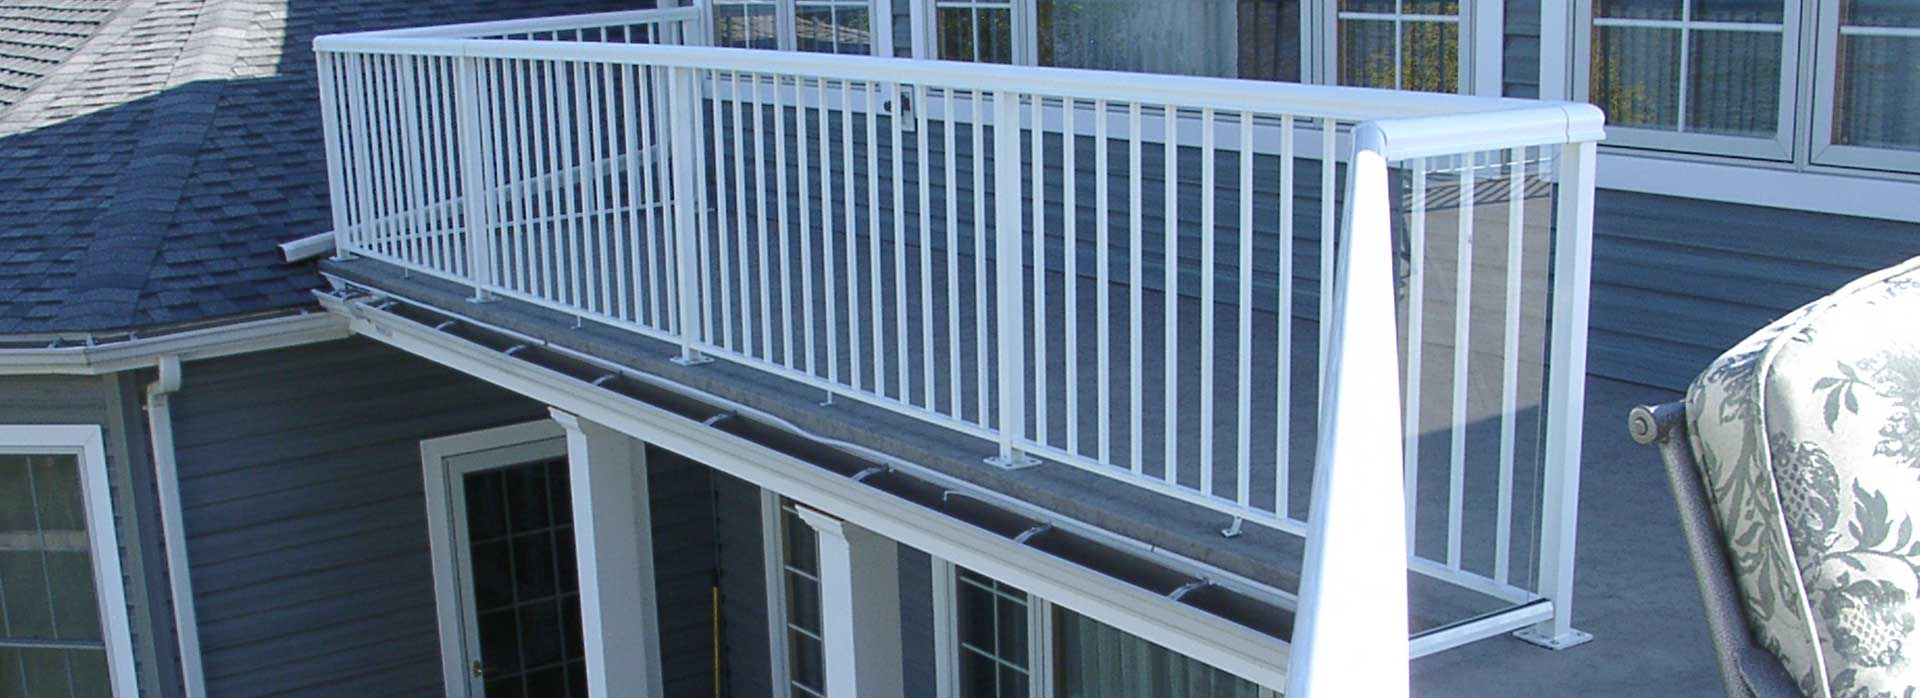 Deck Railing Image Gallery Aluminum Railing Stairs And